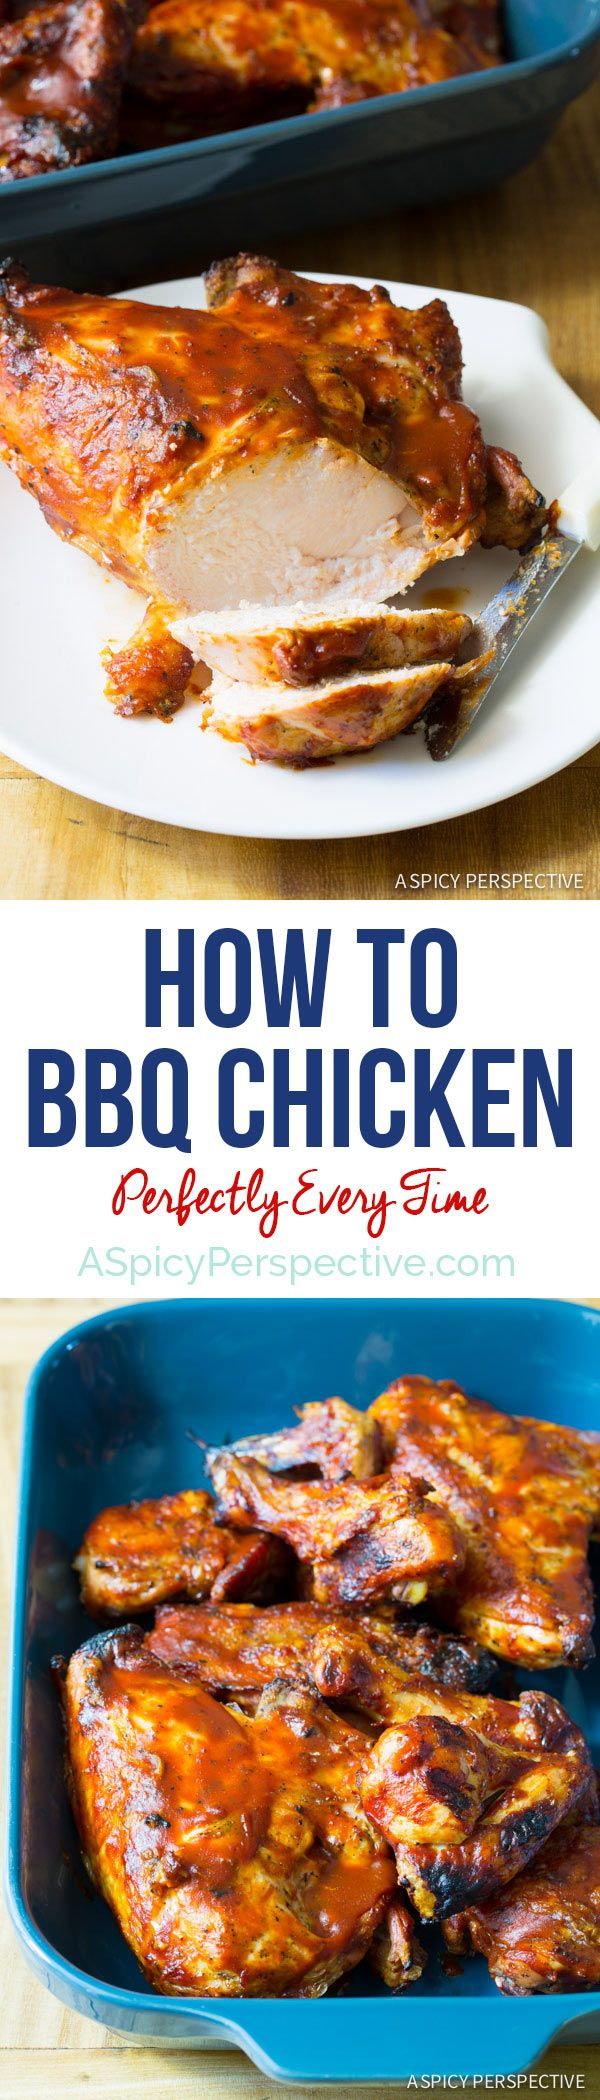 How to: BBQ Chicken - Tips and Tricks for Perfect Grilled Chicken! via @spicyperspectiv